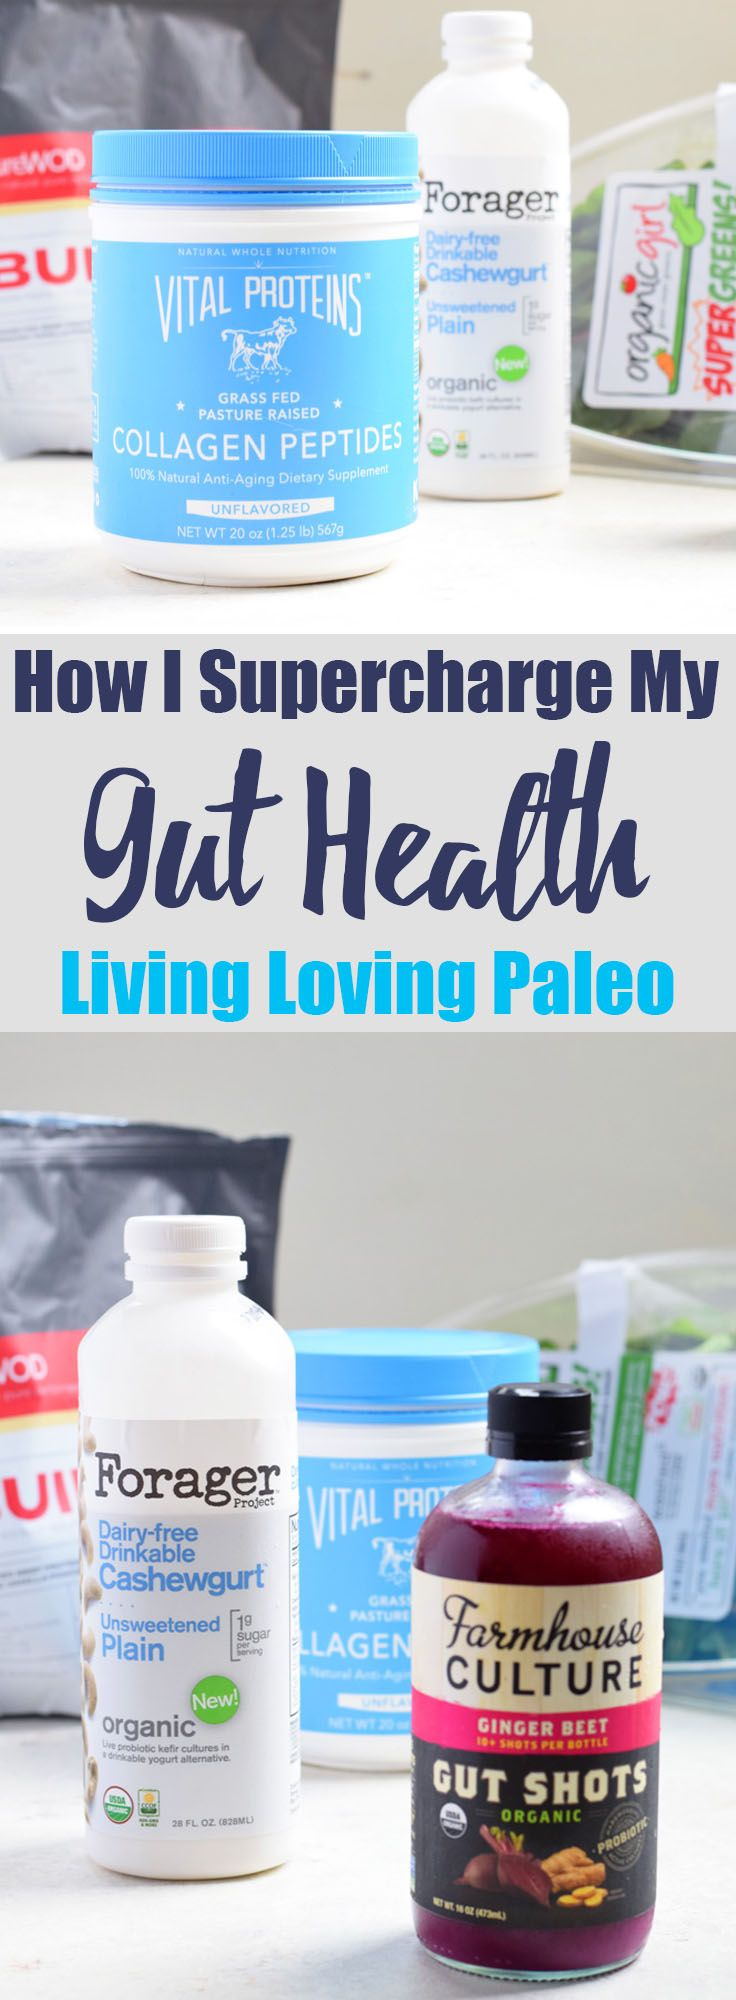 How I Supercharge My Gut Health from Living Loving Paleo | If you're recovering from an illness or just want to optimize your gut health, this post is for YOU!